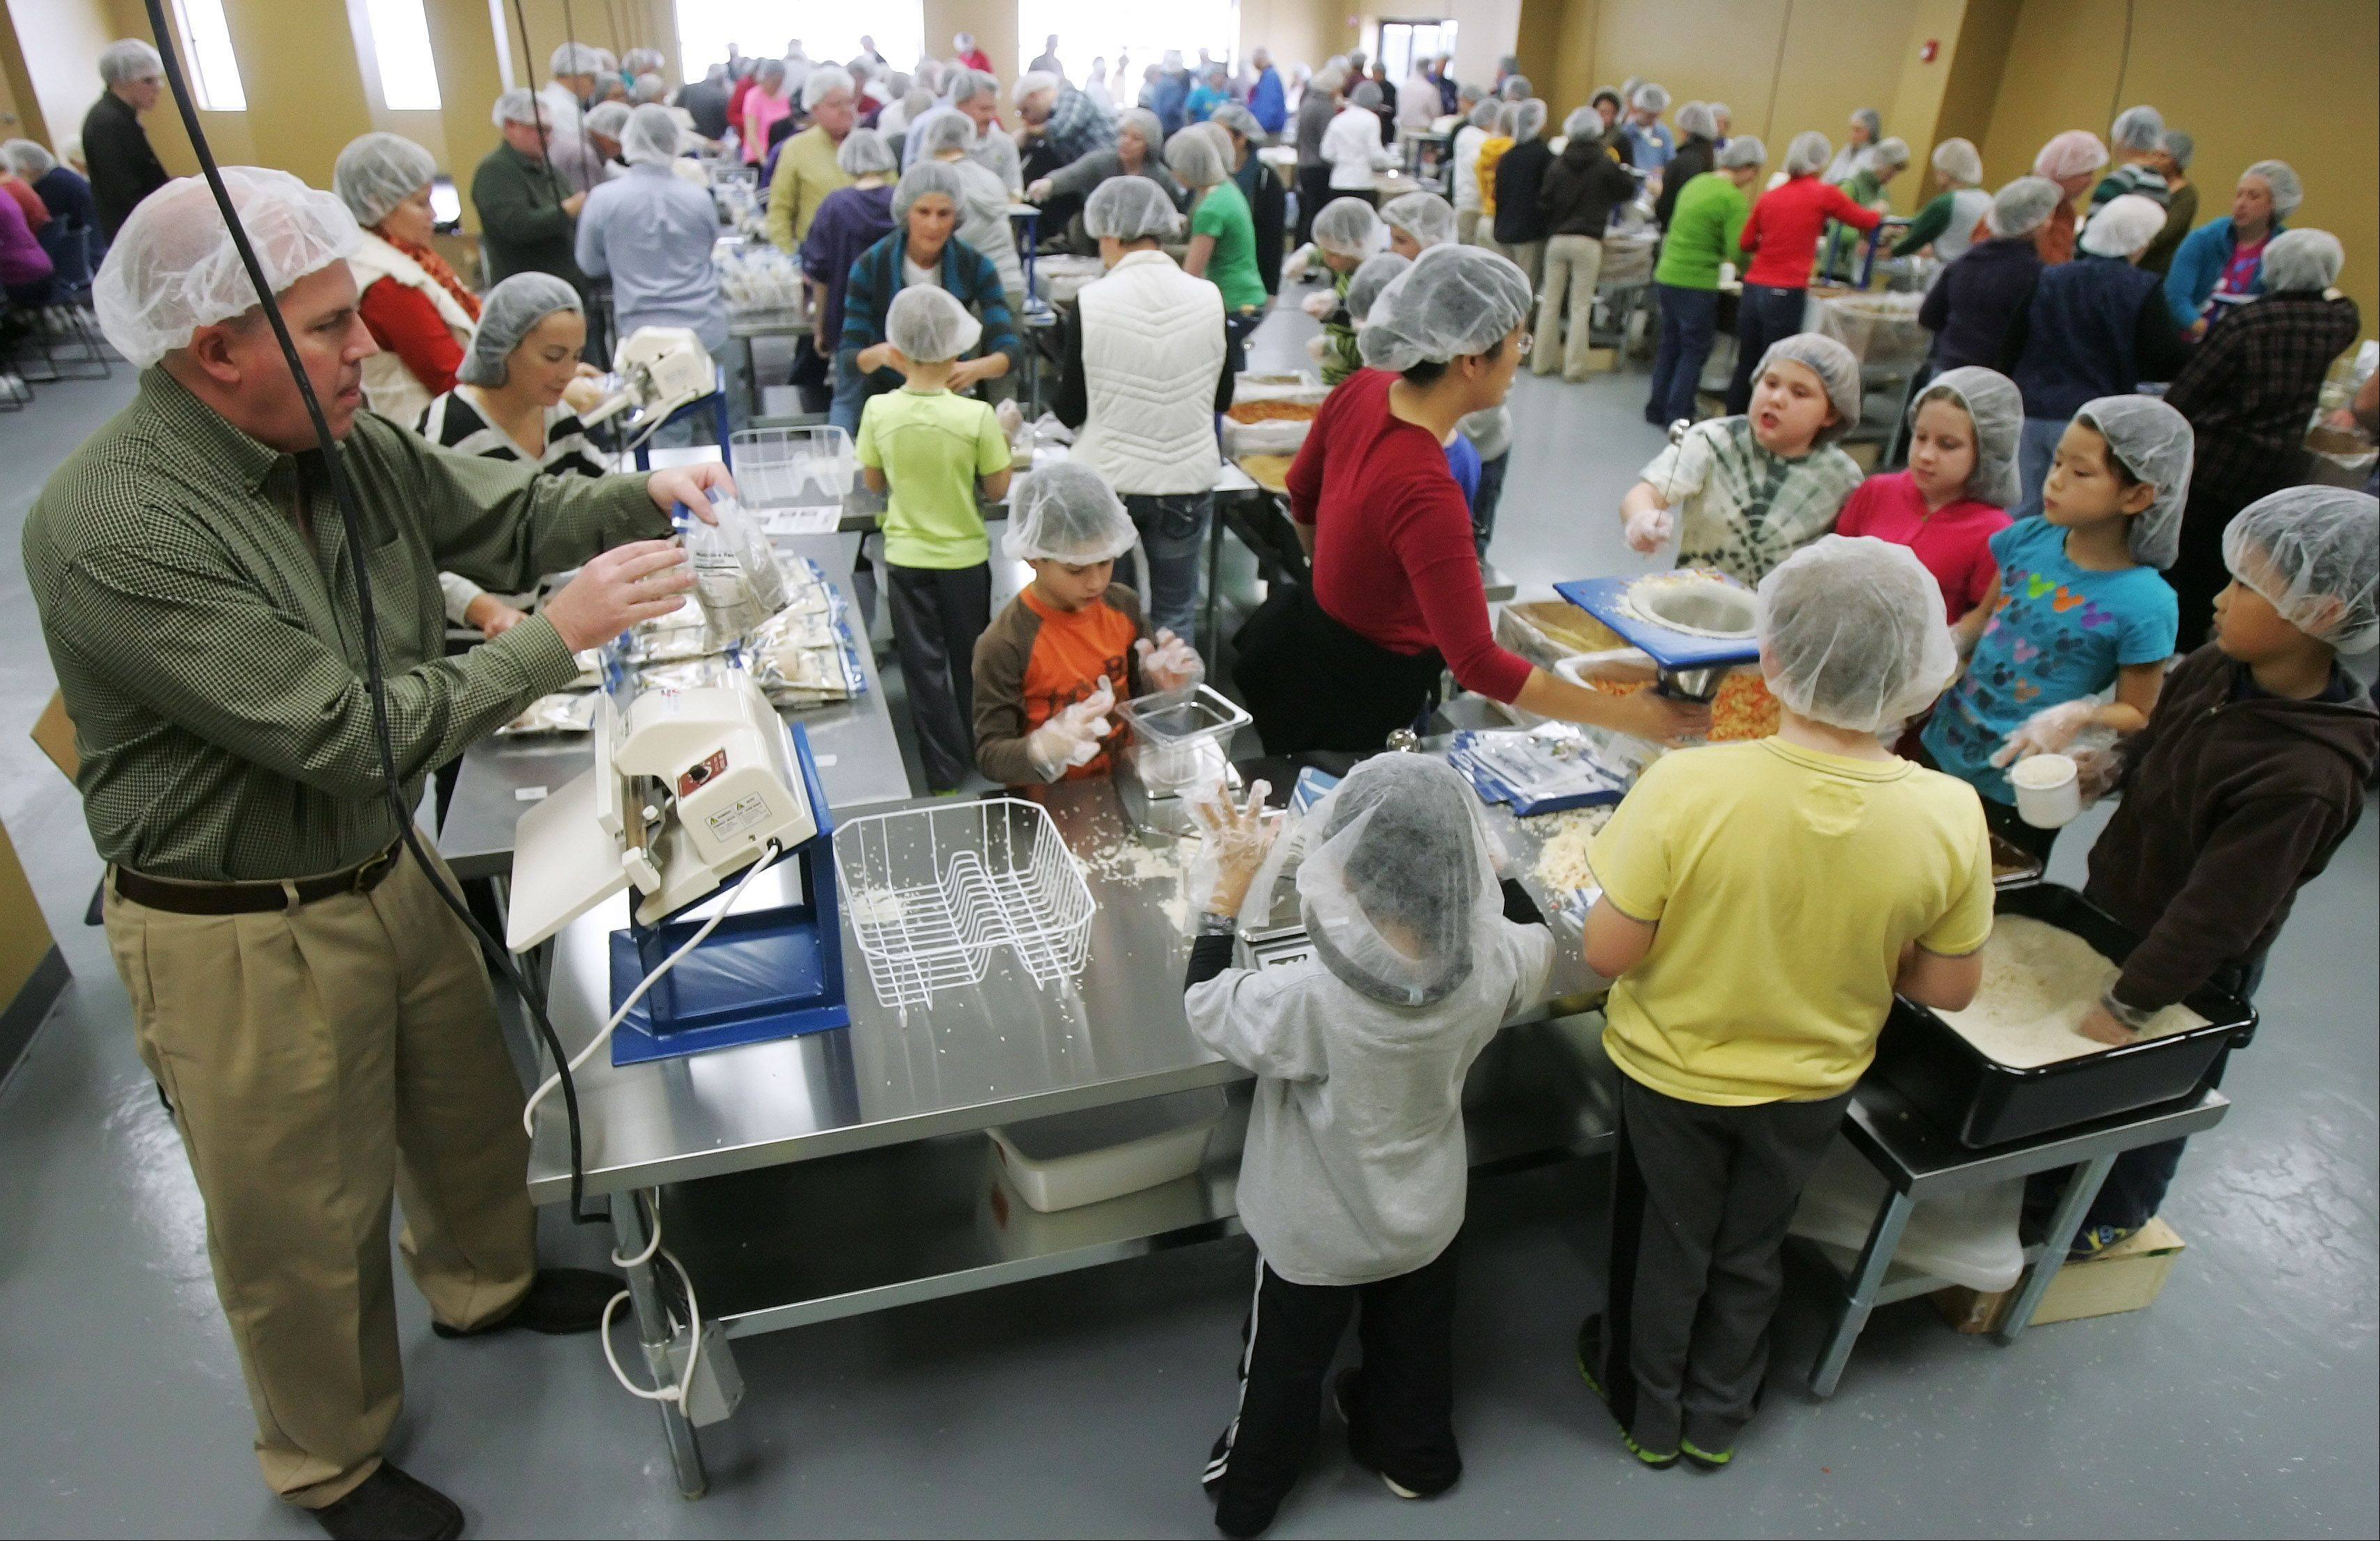 Volunteers work during the inaugural meal-packing session Wednesday at Feed My Starving Children in Libertyville. The Libertyville location is the Christian hunger relief organization's third and largest in the Chicago area.